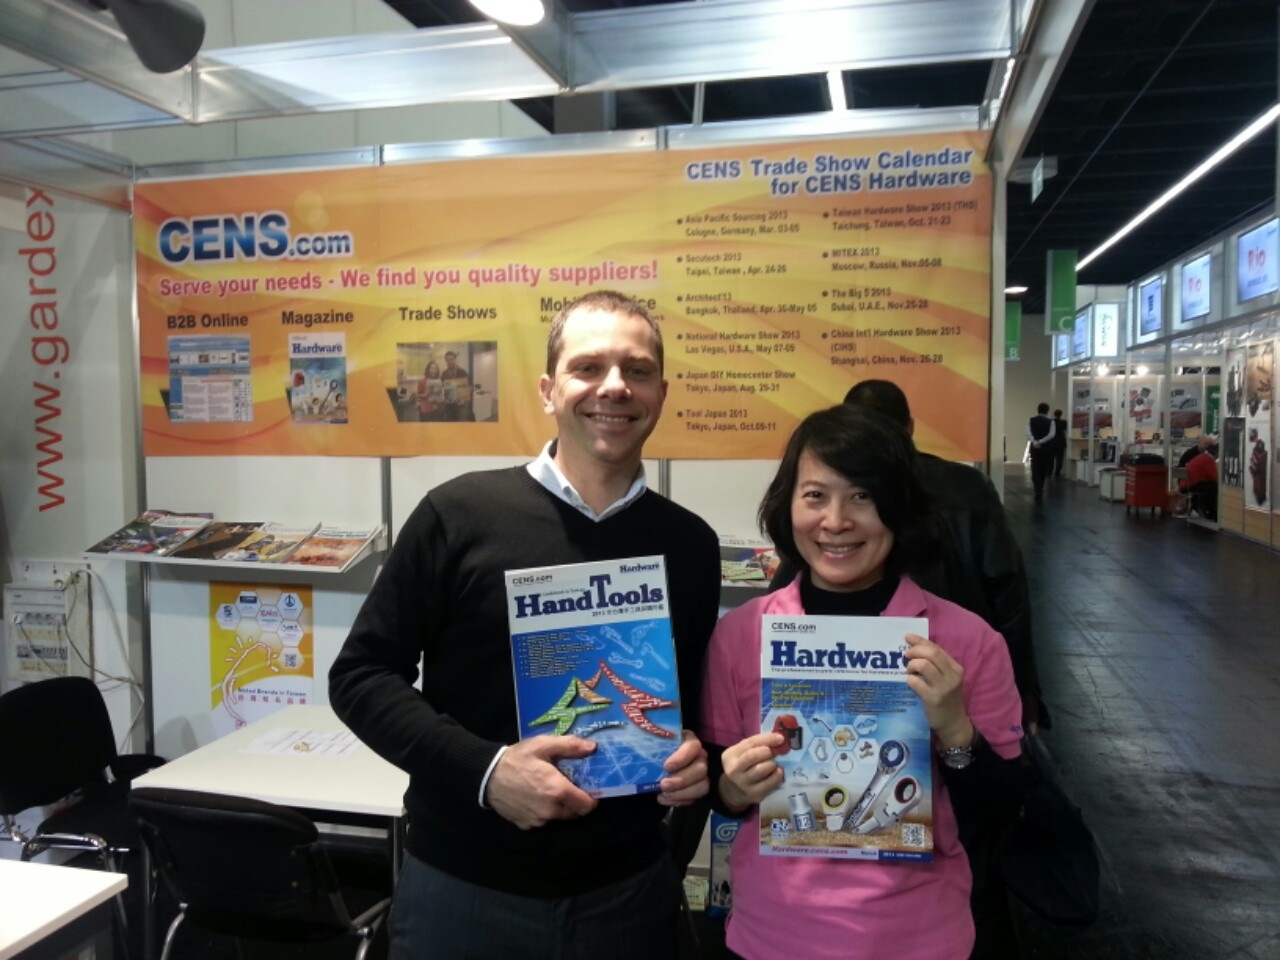 CENS Hardware and Guidebook to Taiwan Hand Tools are popular with buyers at Asia-Pacific Sourcing 2013.